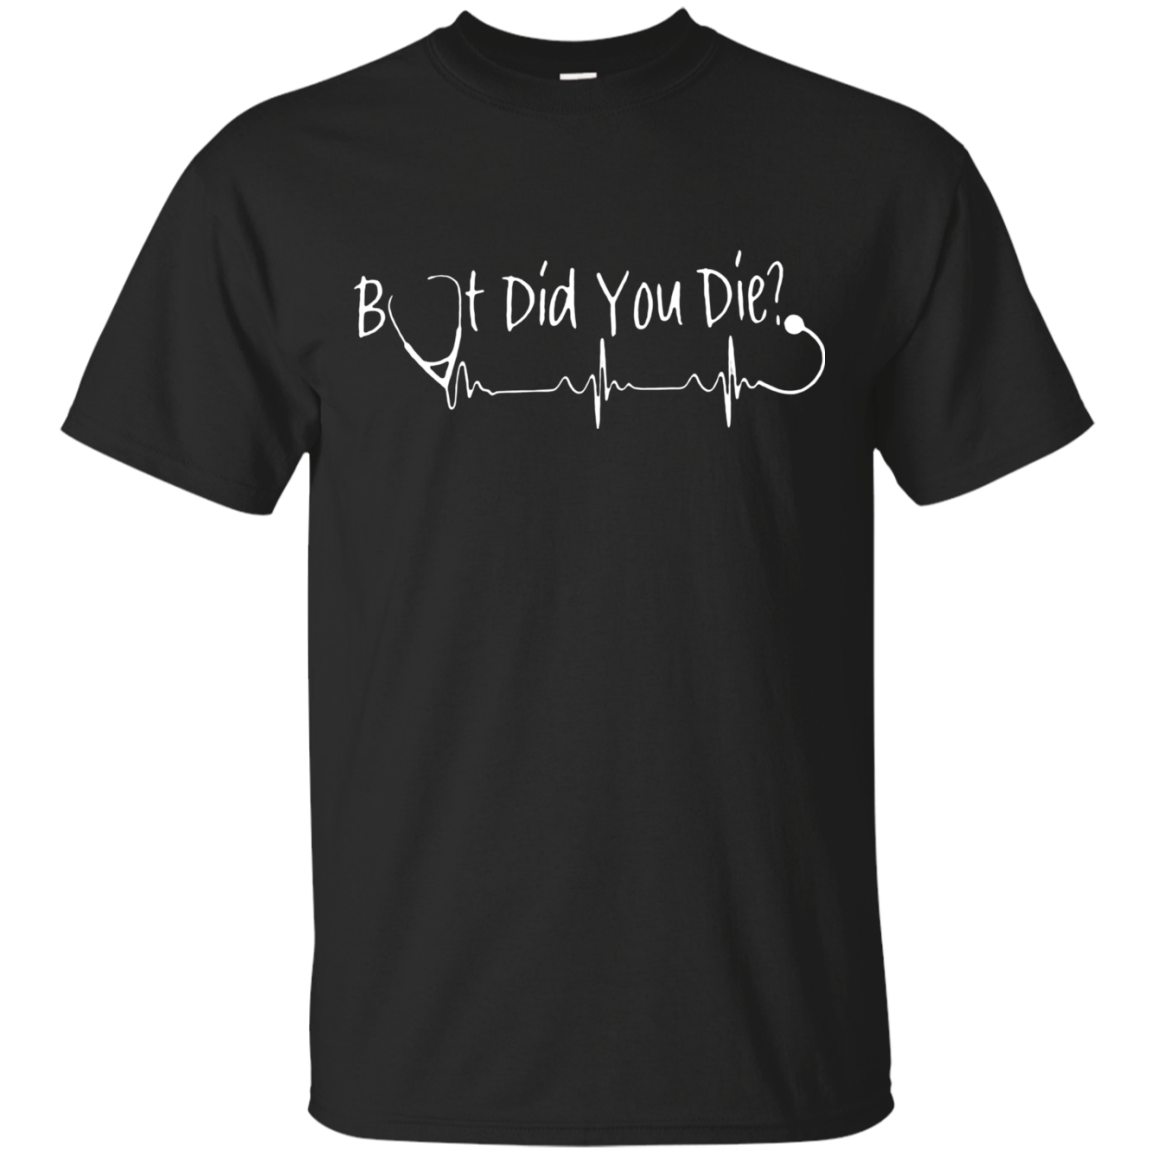 But did you die heartbeat T shirt hoodie sweater Men